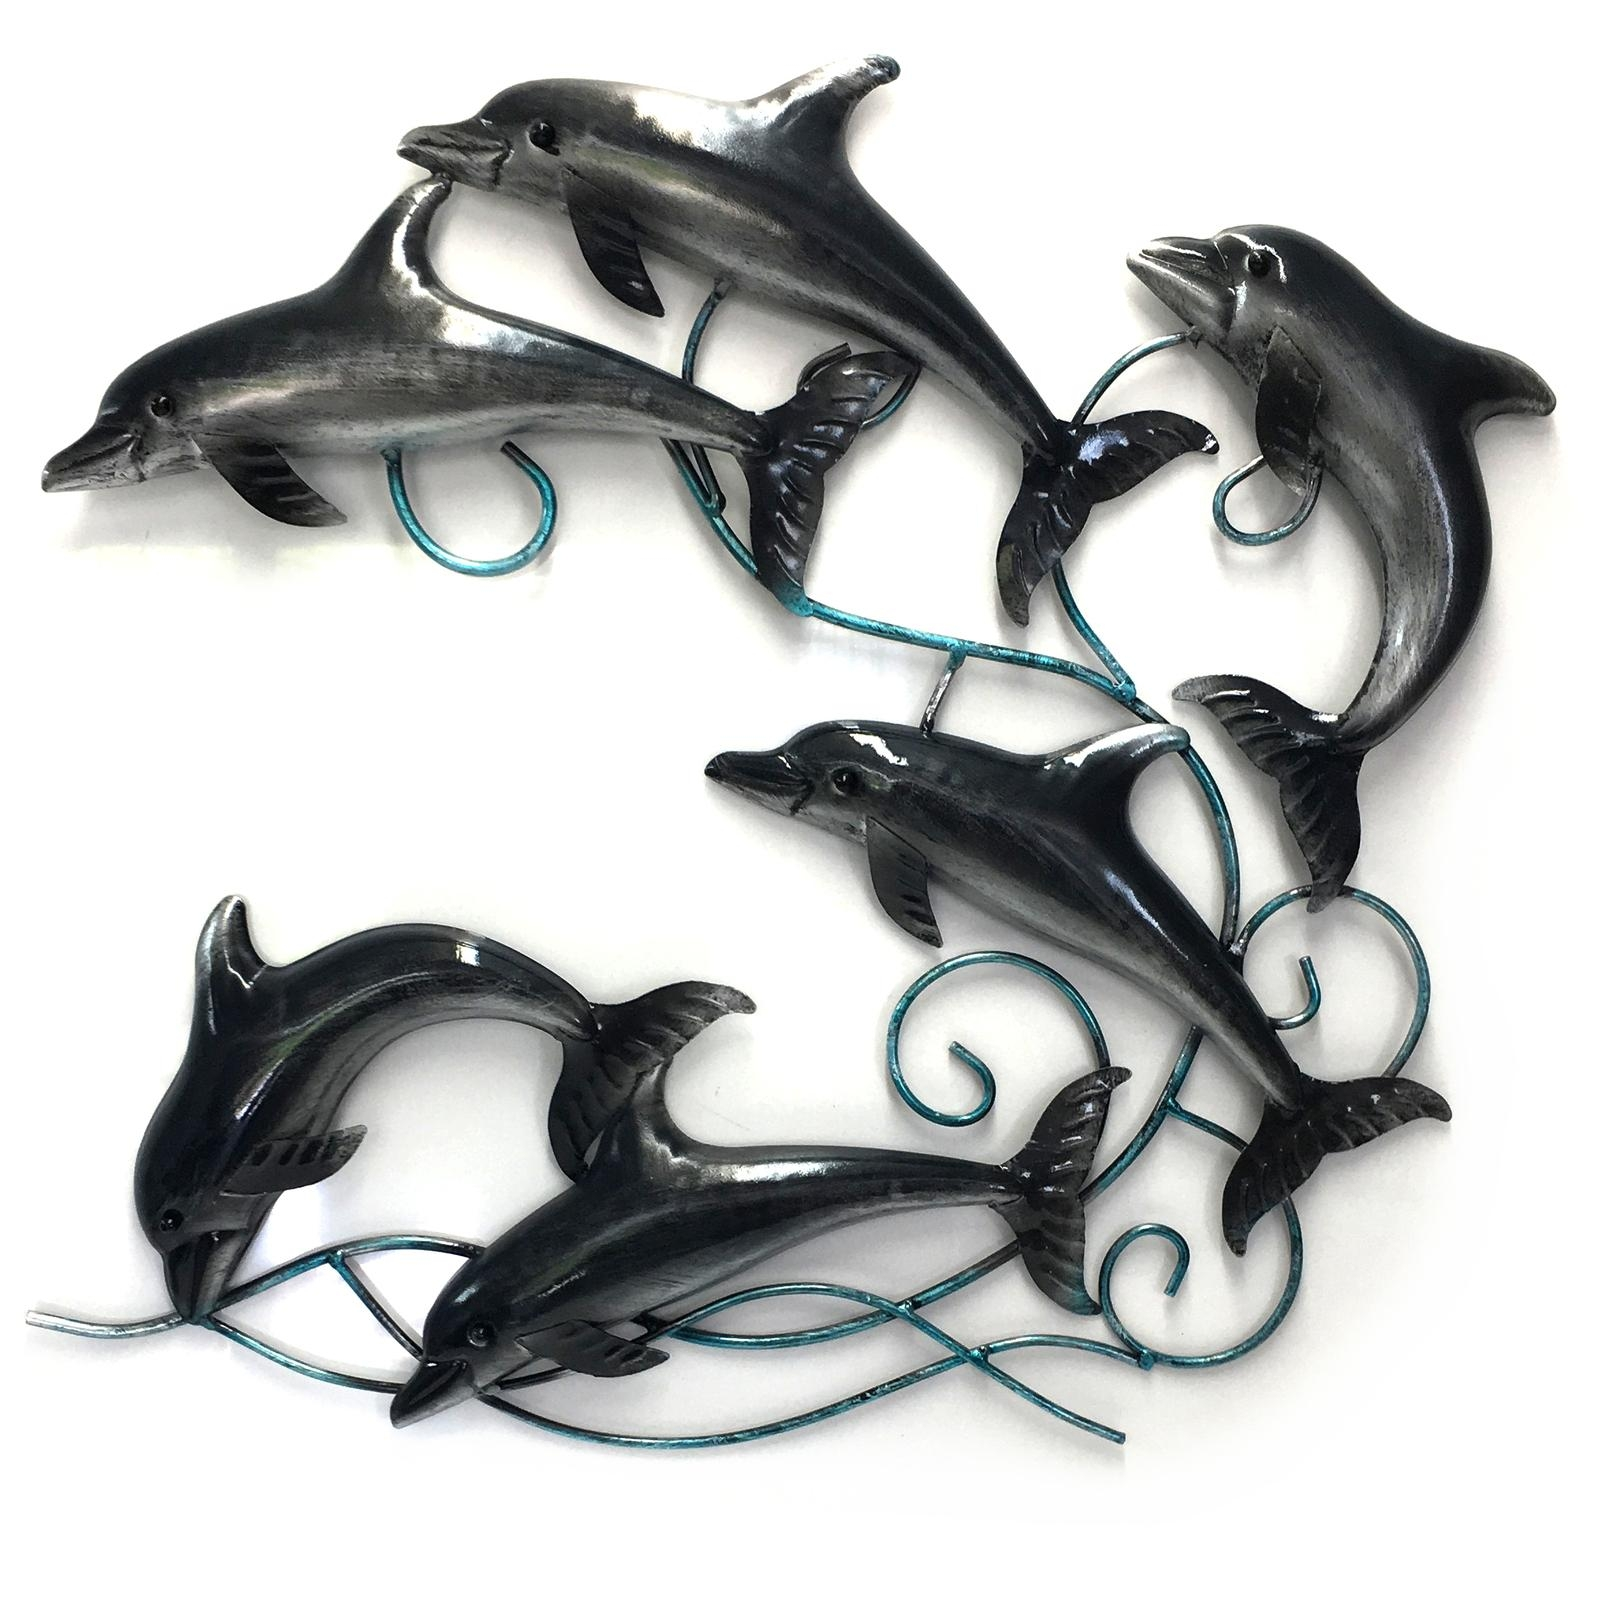 Dolphin Metal Wall Art Sculpture Hanging Garden Ornament Beach Big Intended For Dolphin Metal Wall Art (View 9 of 20)